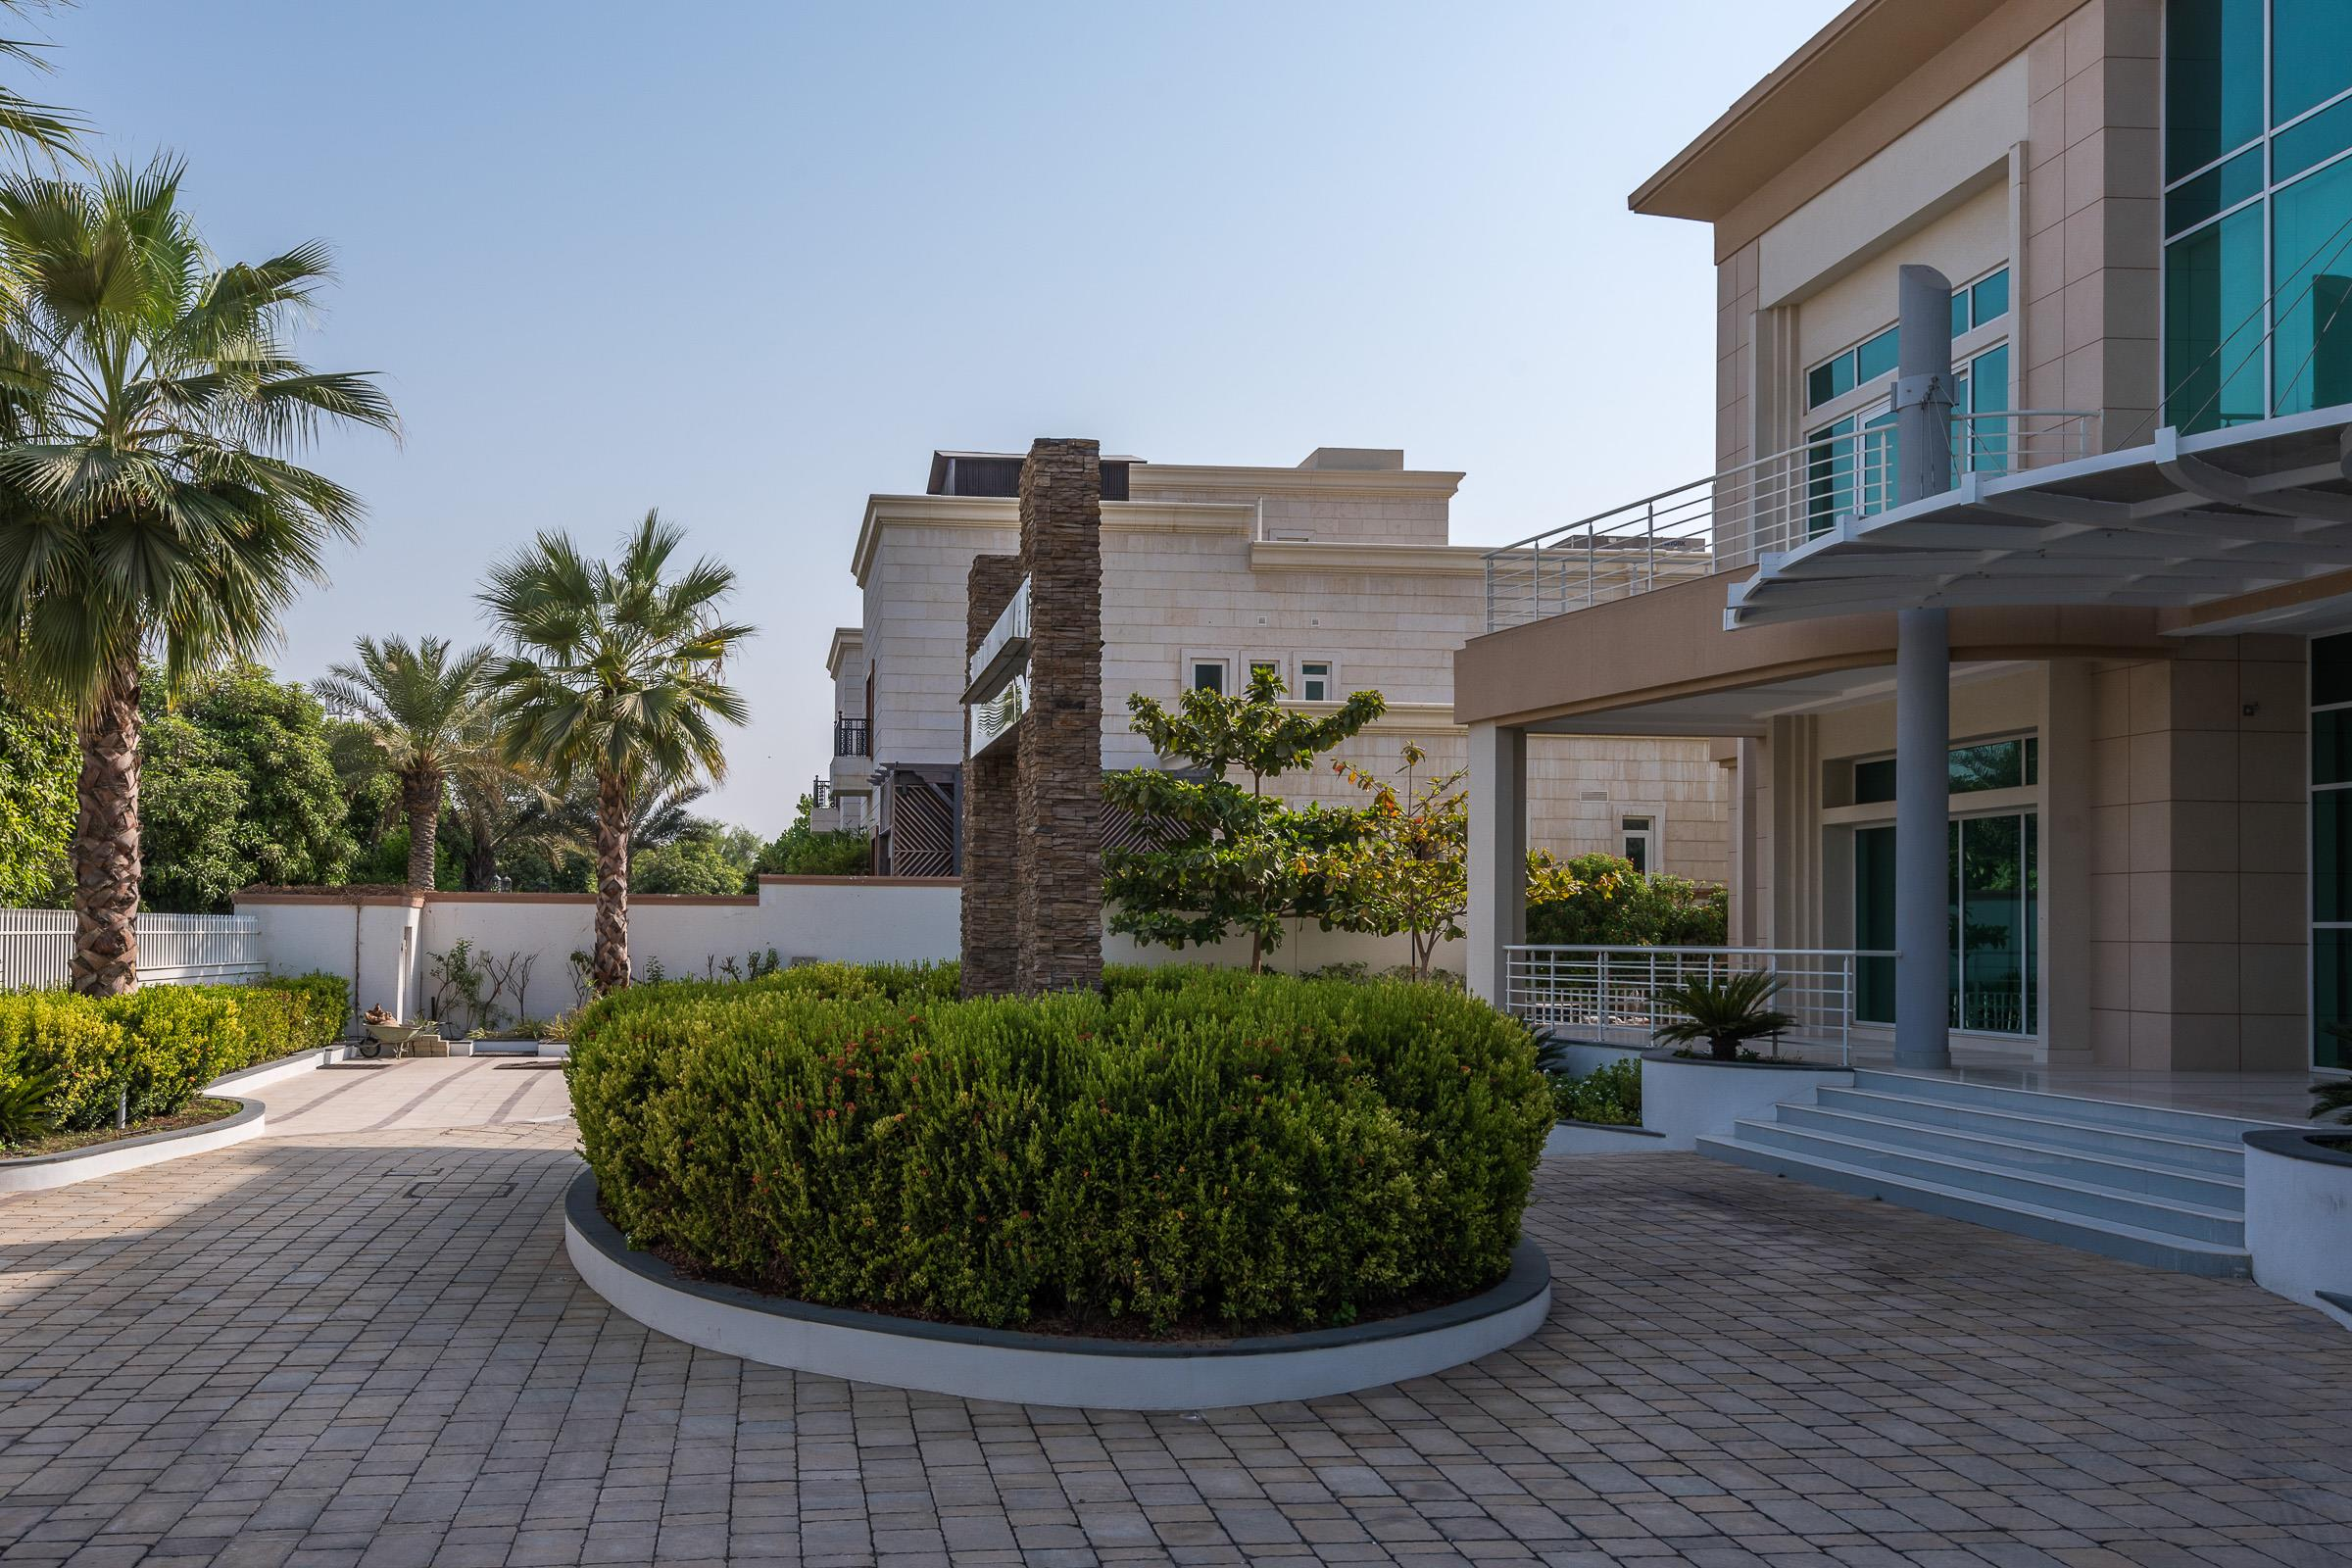 Emirates Hills - Market Committed Seller